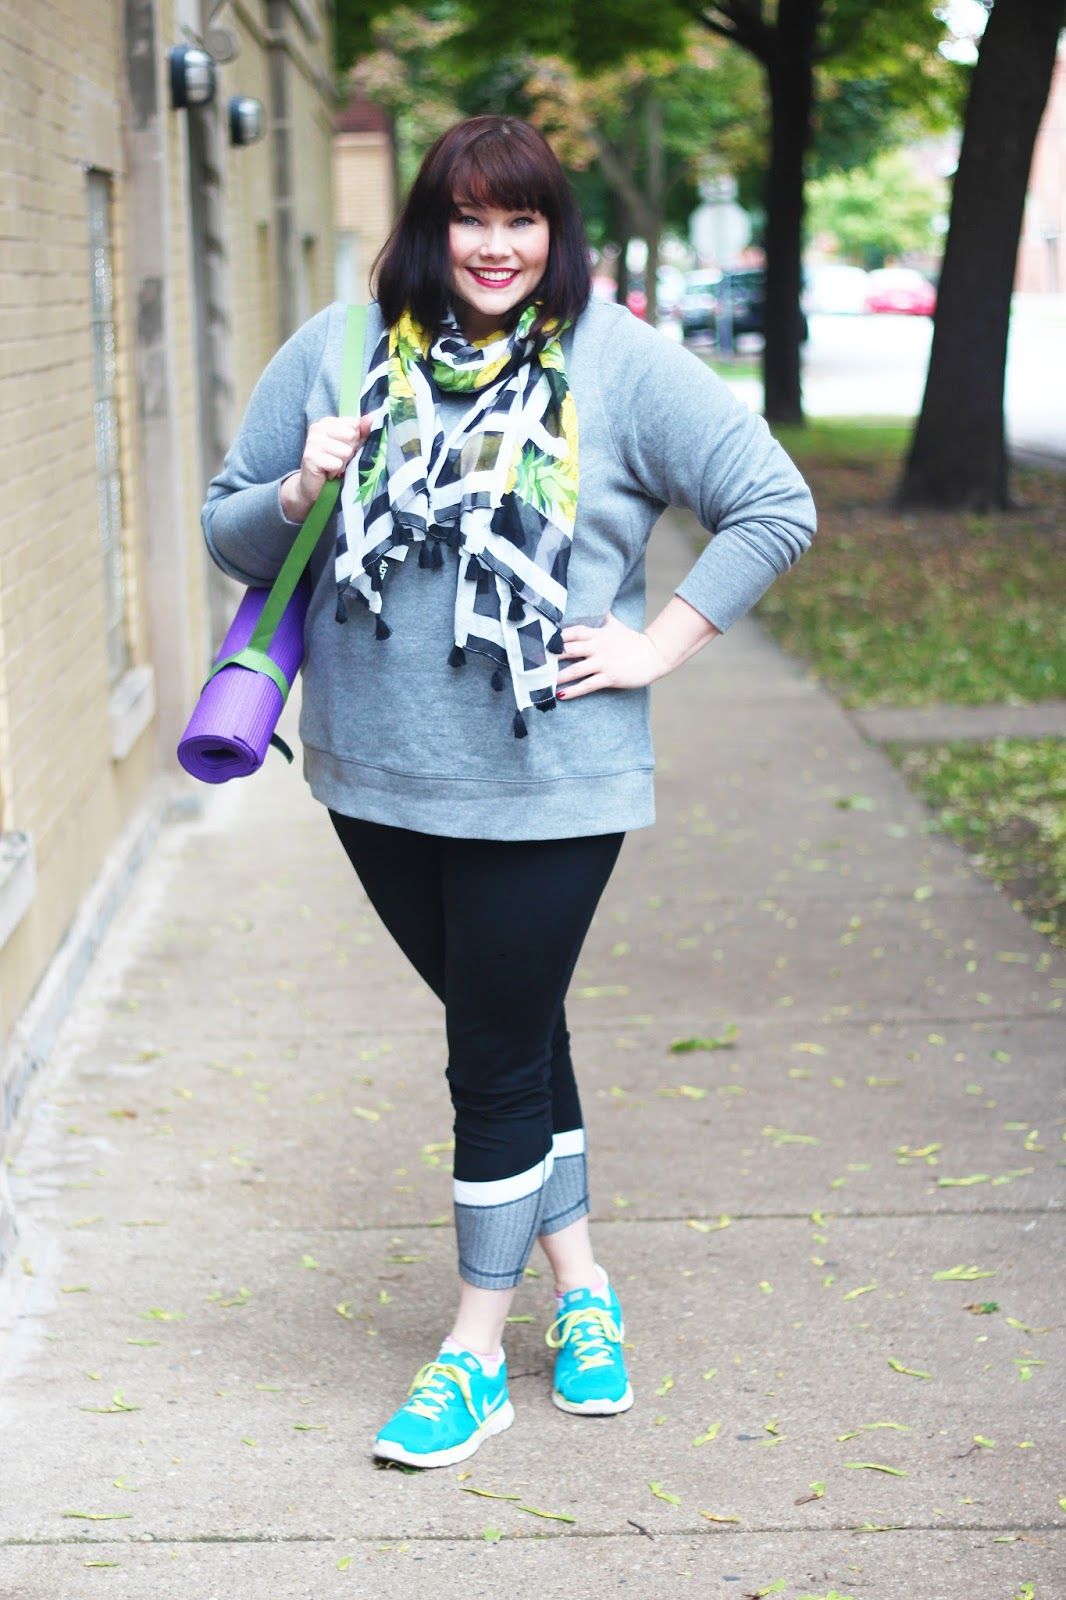 fbc181cdb50 Plus Size Blogger Amber from Style Plus Curves in Plus Size Workout Wear  from Kohl s